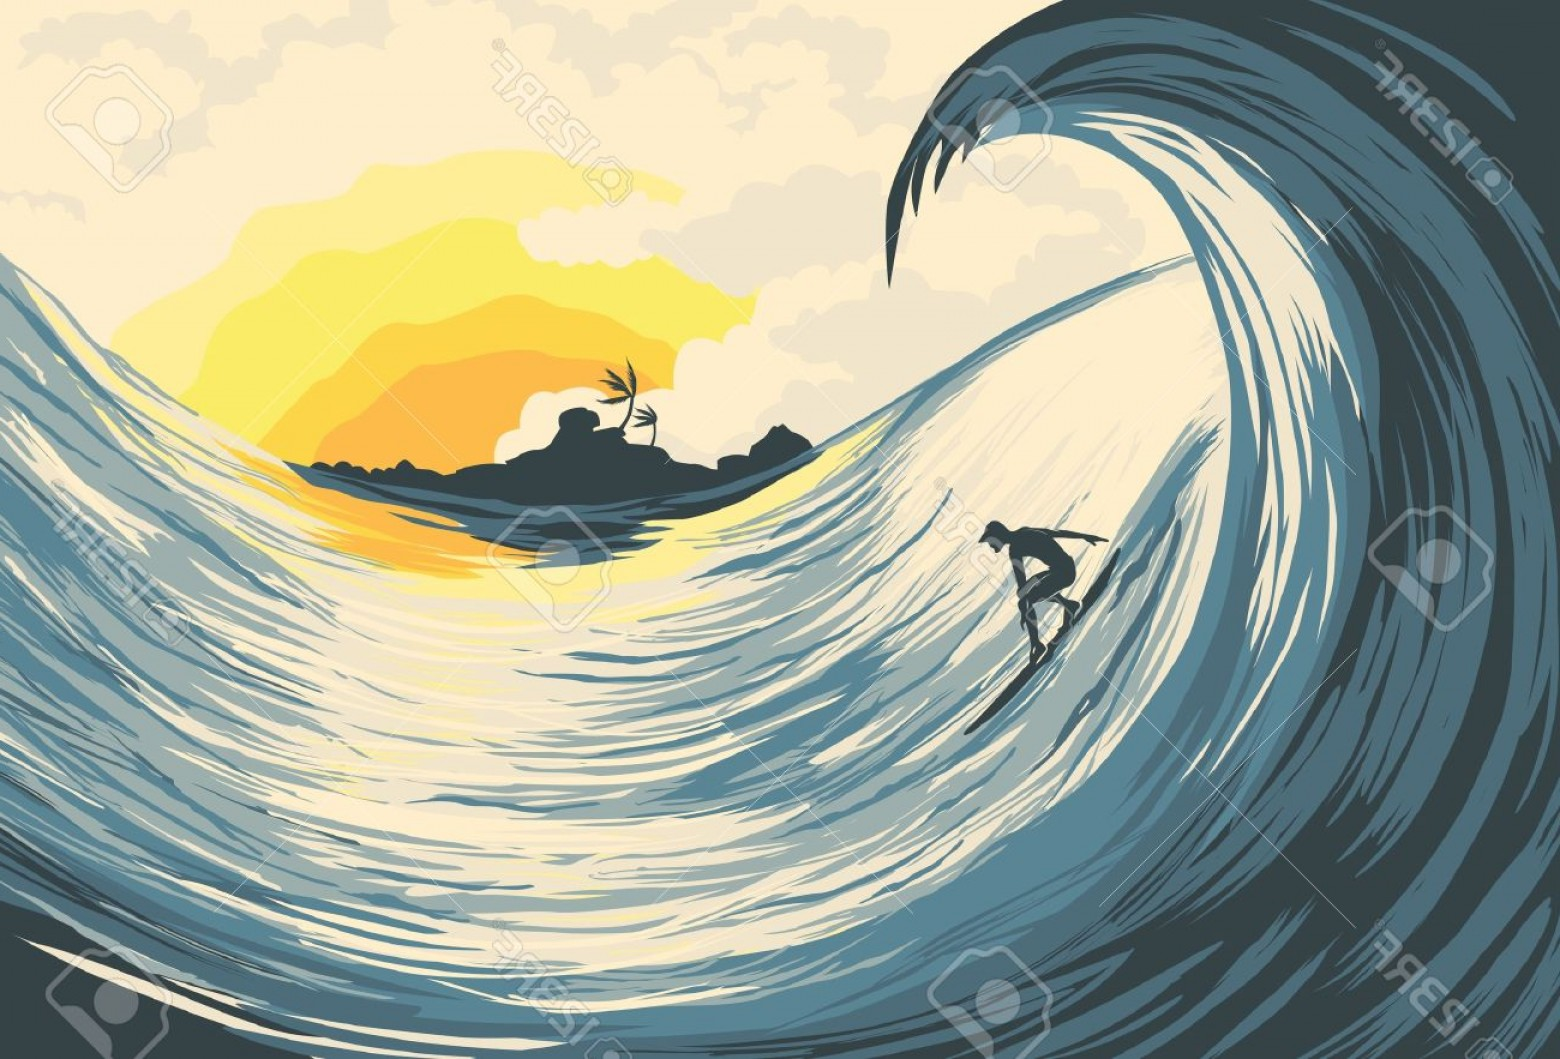 Waves With Surfer Silhouette Vector: Phototropical Island Wave And Surfer At Sunset